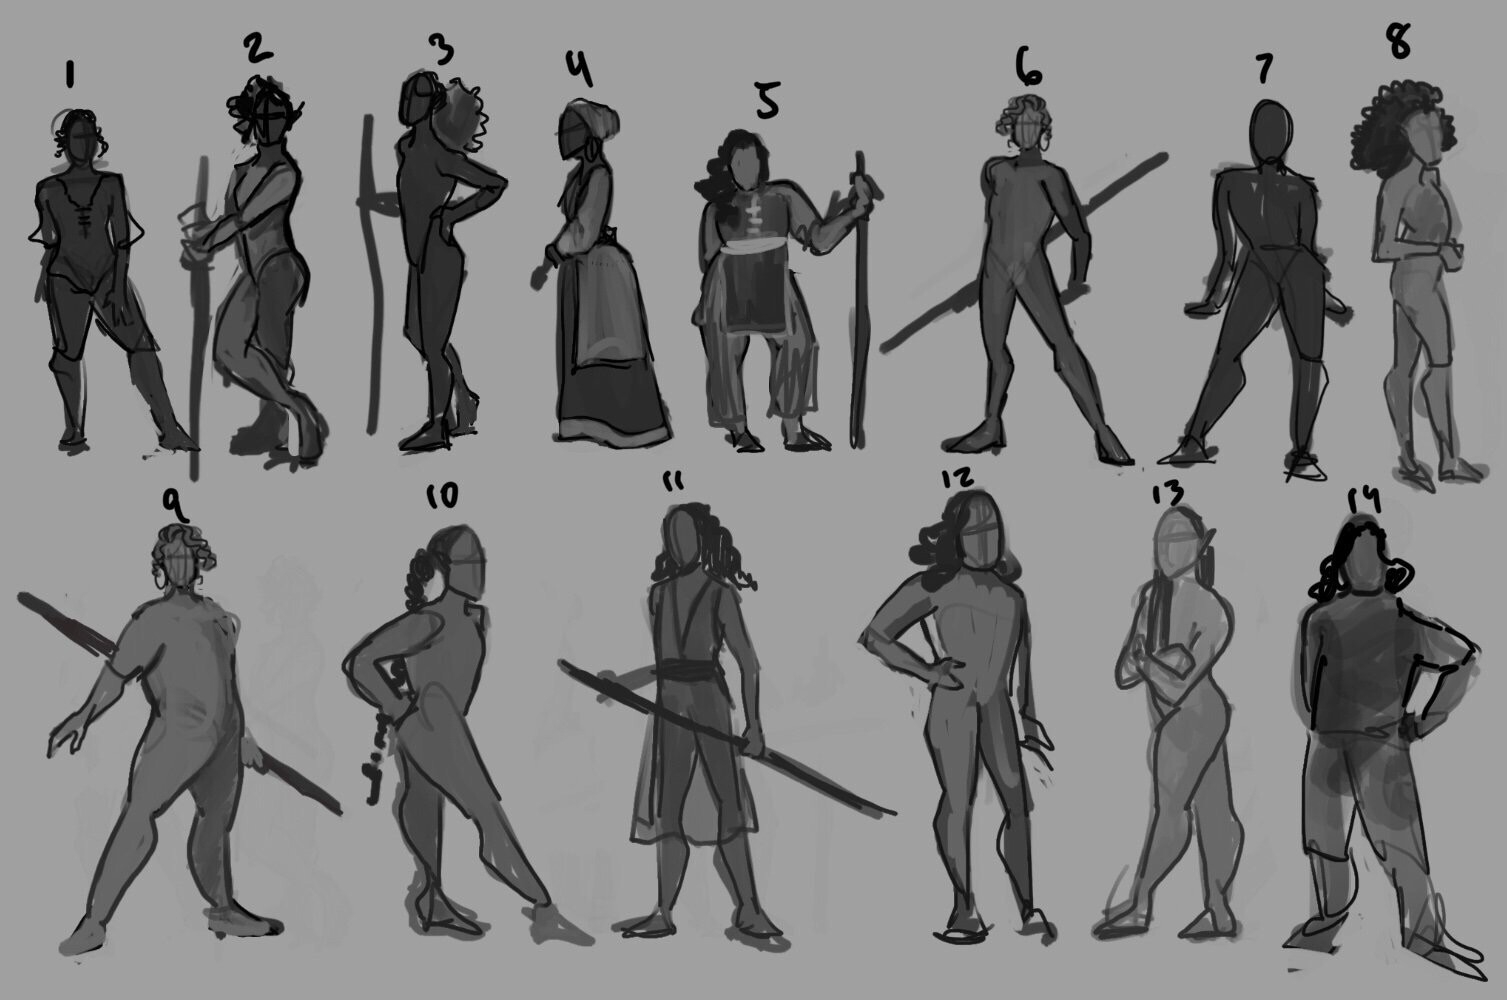 Process work - choosing a character silhouette!  I ended up going with 9 for the general attitude of the body's gesture.